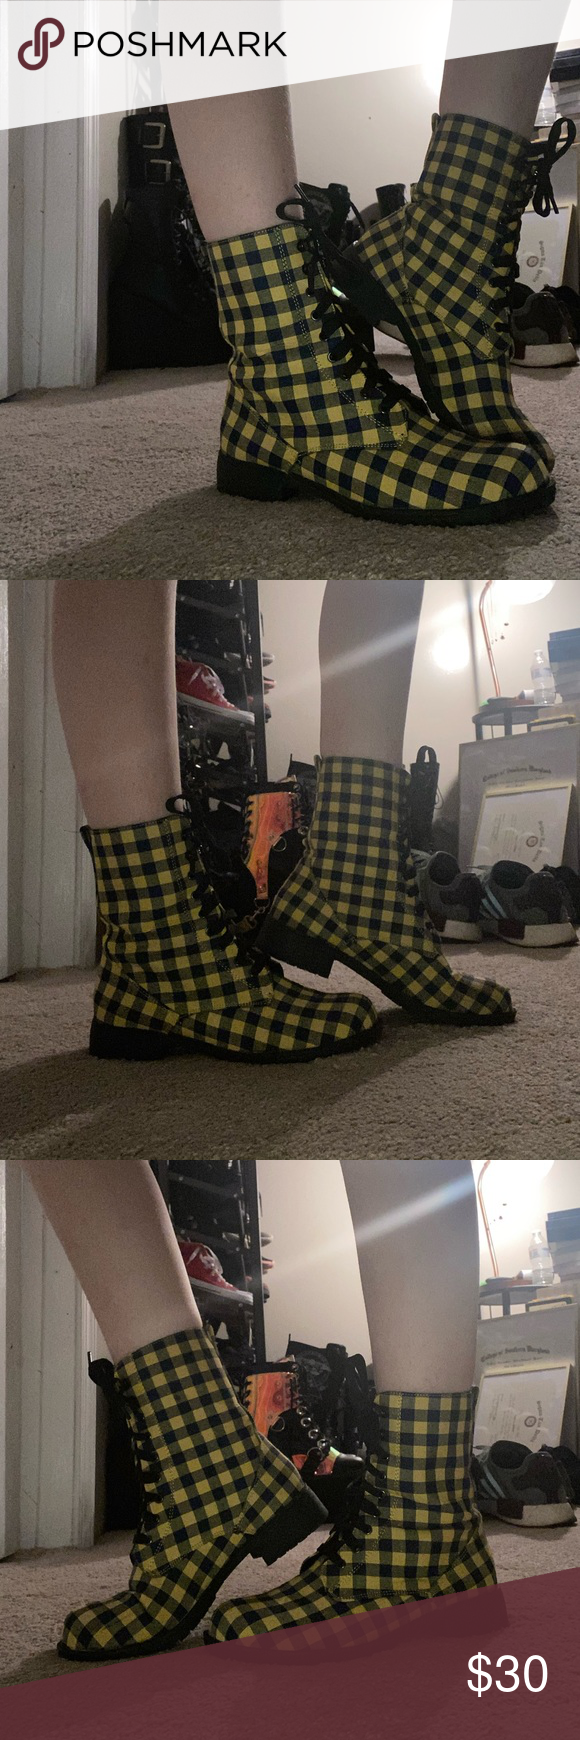 Hot Topic Plaid Combat Boots Worn once, no OG boxing, will wrap them up for you though :} just too bright for me. They are yellow and navy with black laces. Hot Topic Shoes Combat & Moto Boots #hottopicclothes Hot Topic Plaid Combat Boots Worn once, no OG boxing, will wrap them up for you though :} just too bright for me. They are yellow and navy with black laces. Hot Topic Shoes Combat & Moto Boots #hottopicclothes